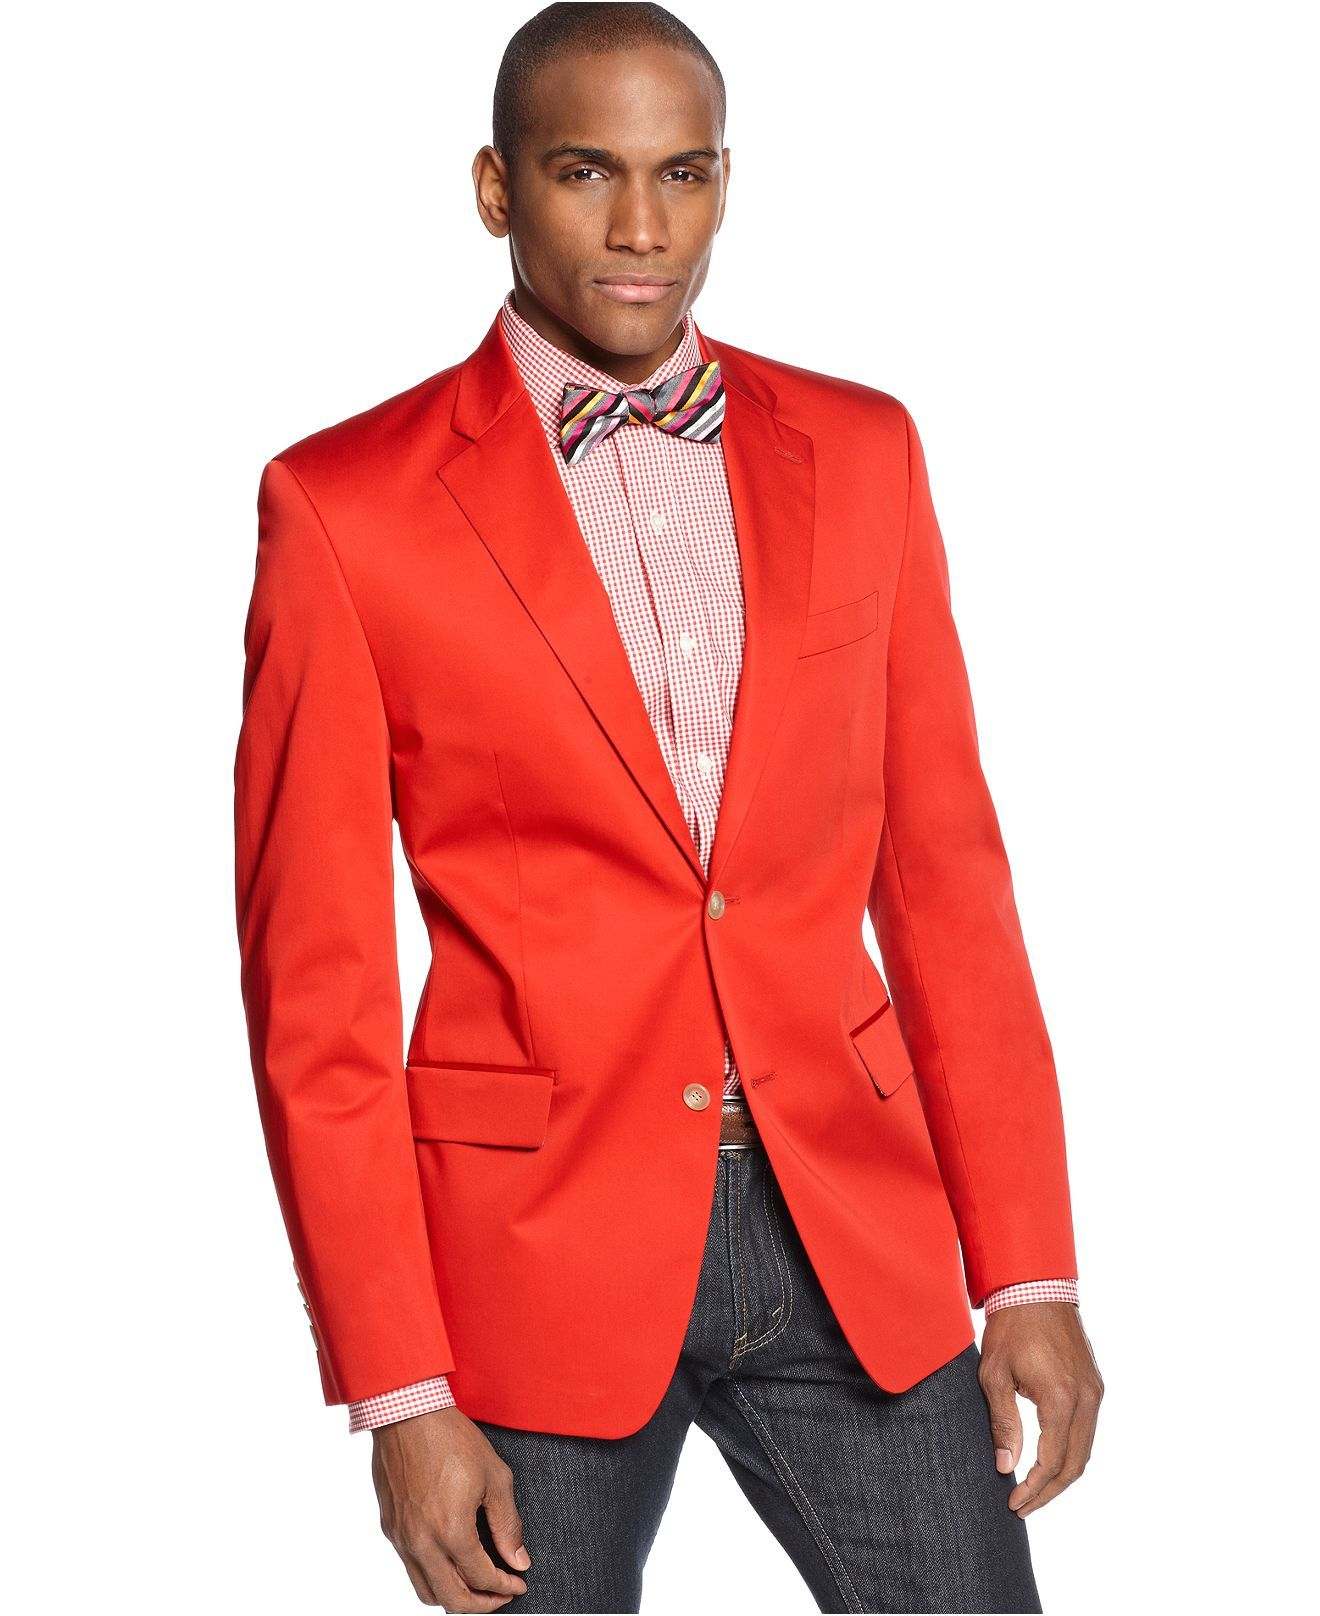 Sean John Jacket, Solid Cotton Blazer - Mens Blazers & Sport Coats ...